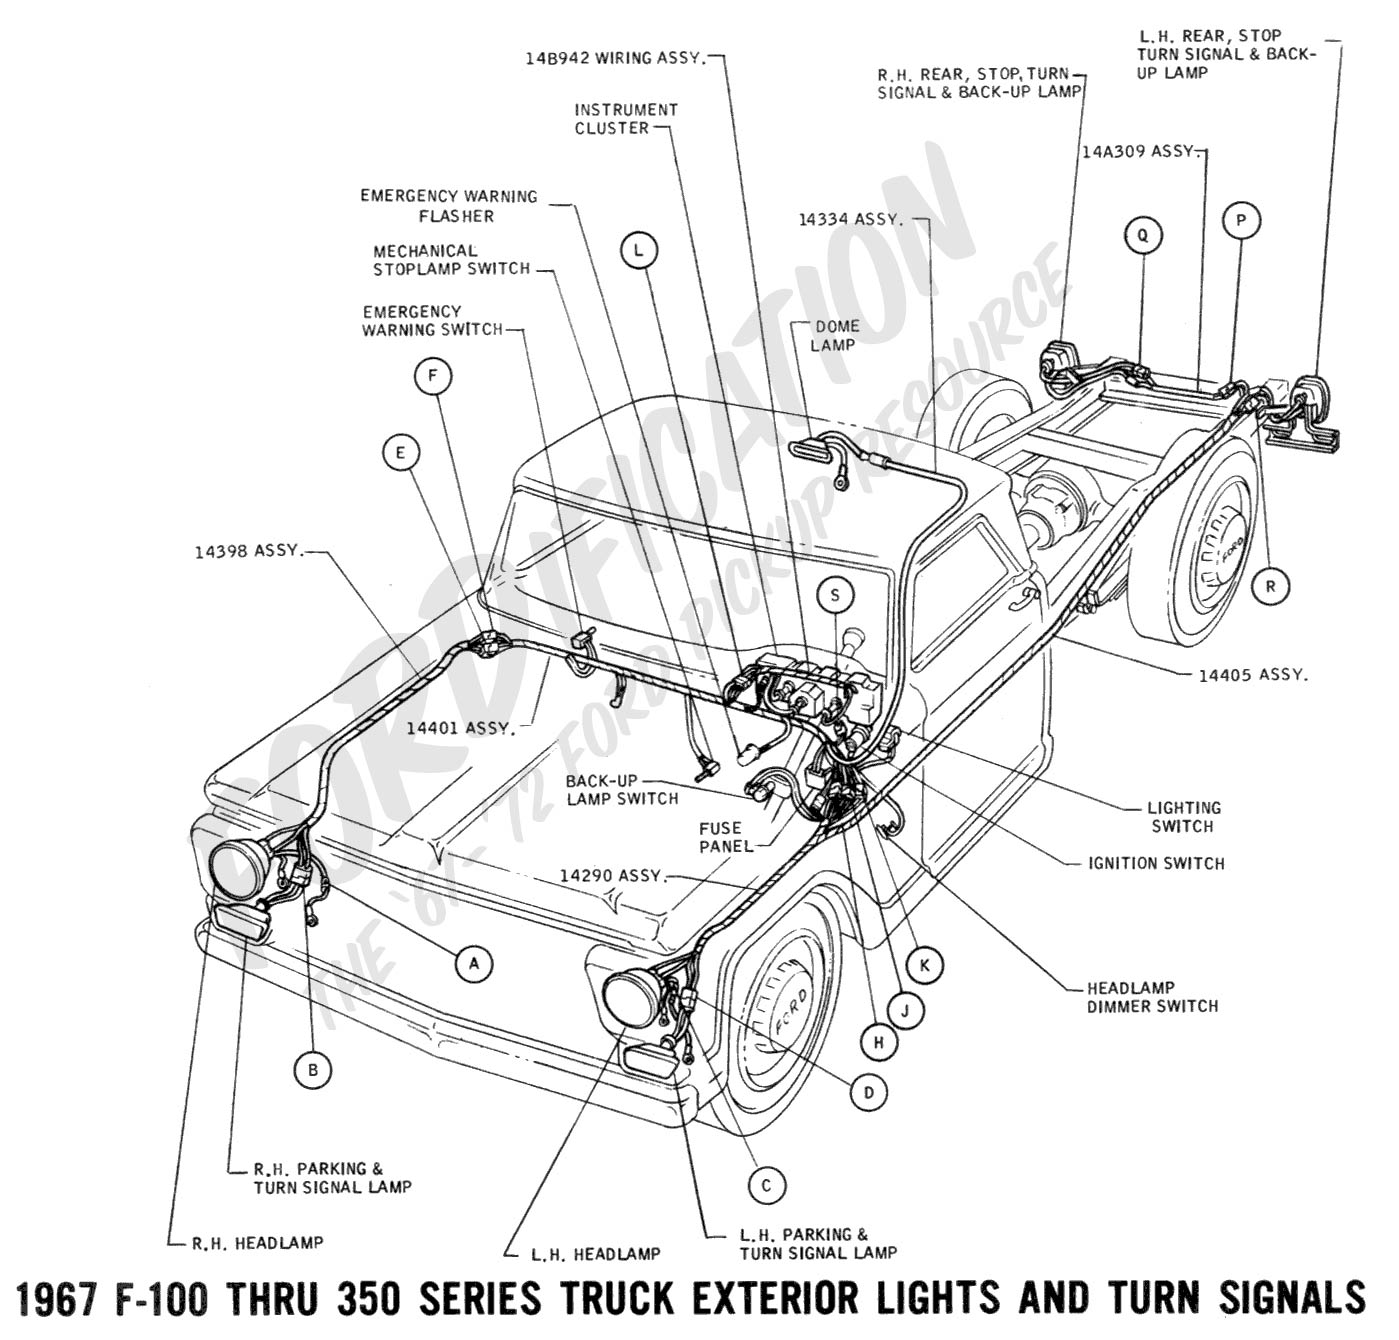 Schematics h on 2004 f350 fuse panel diagram